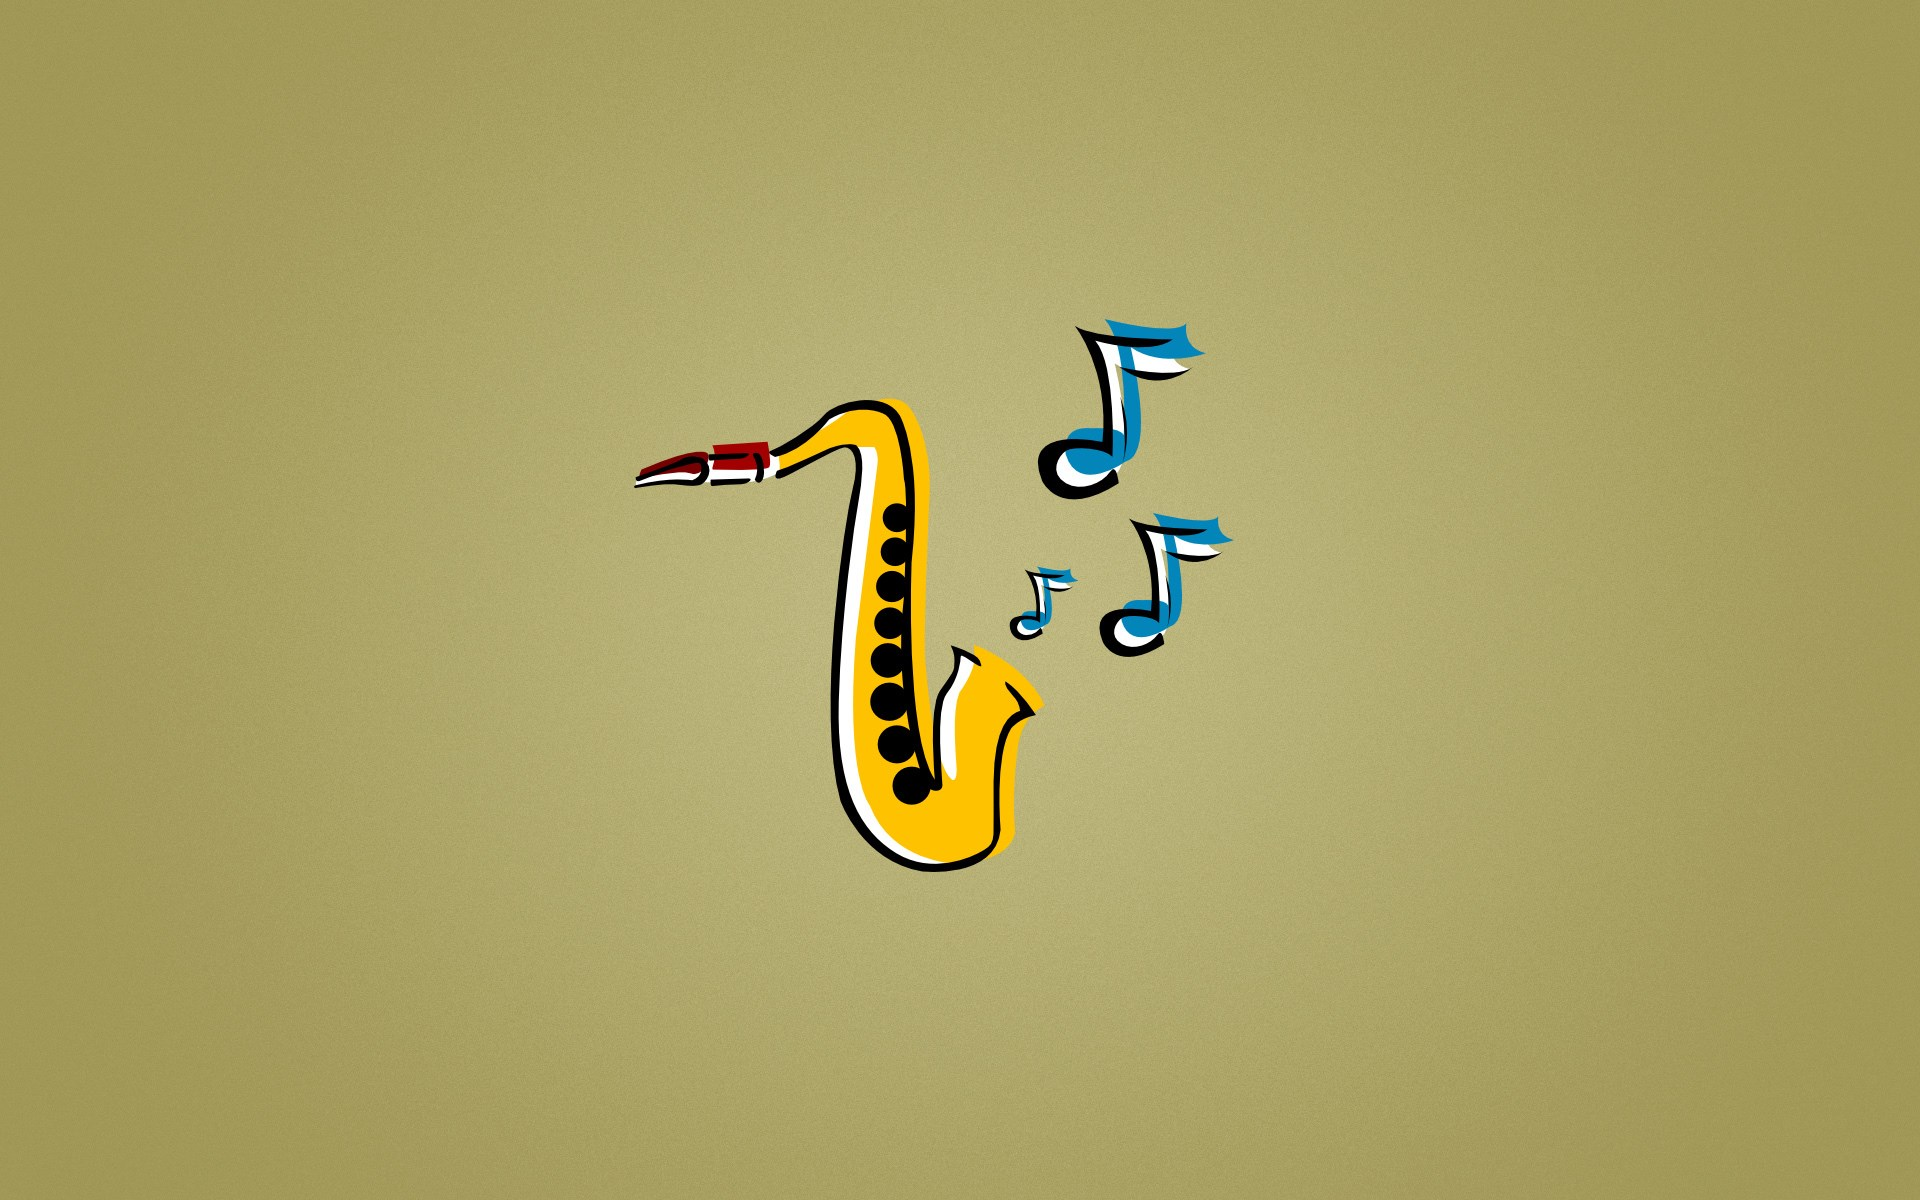 Saxophone Sax Jazz Music Art